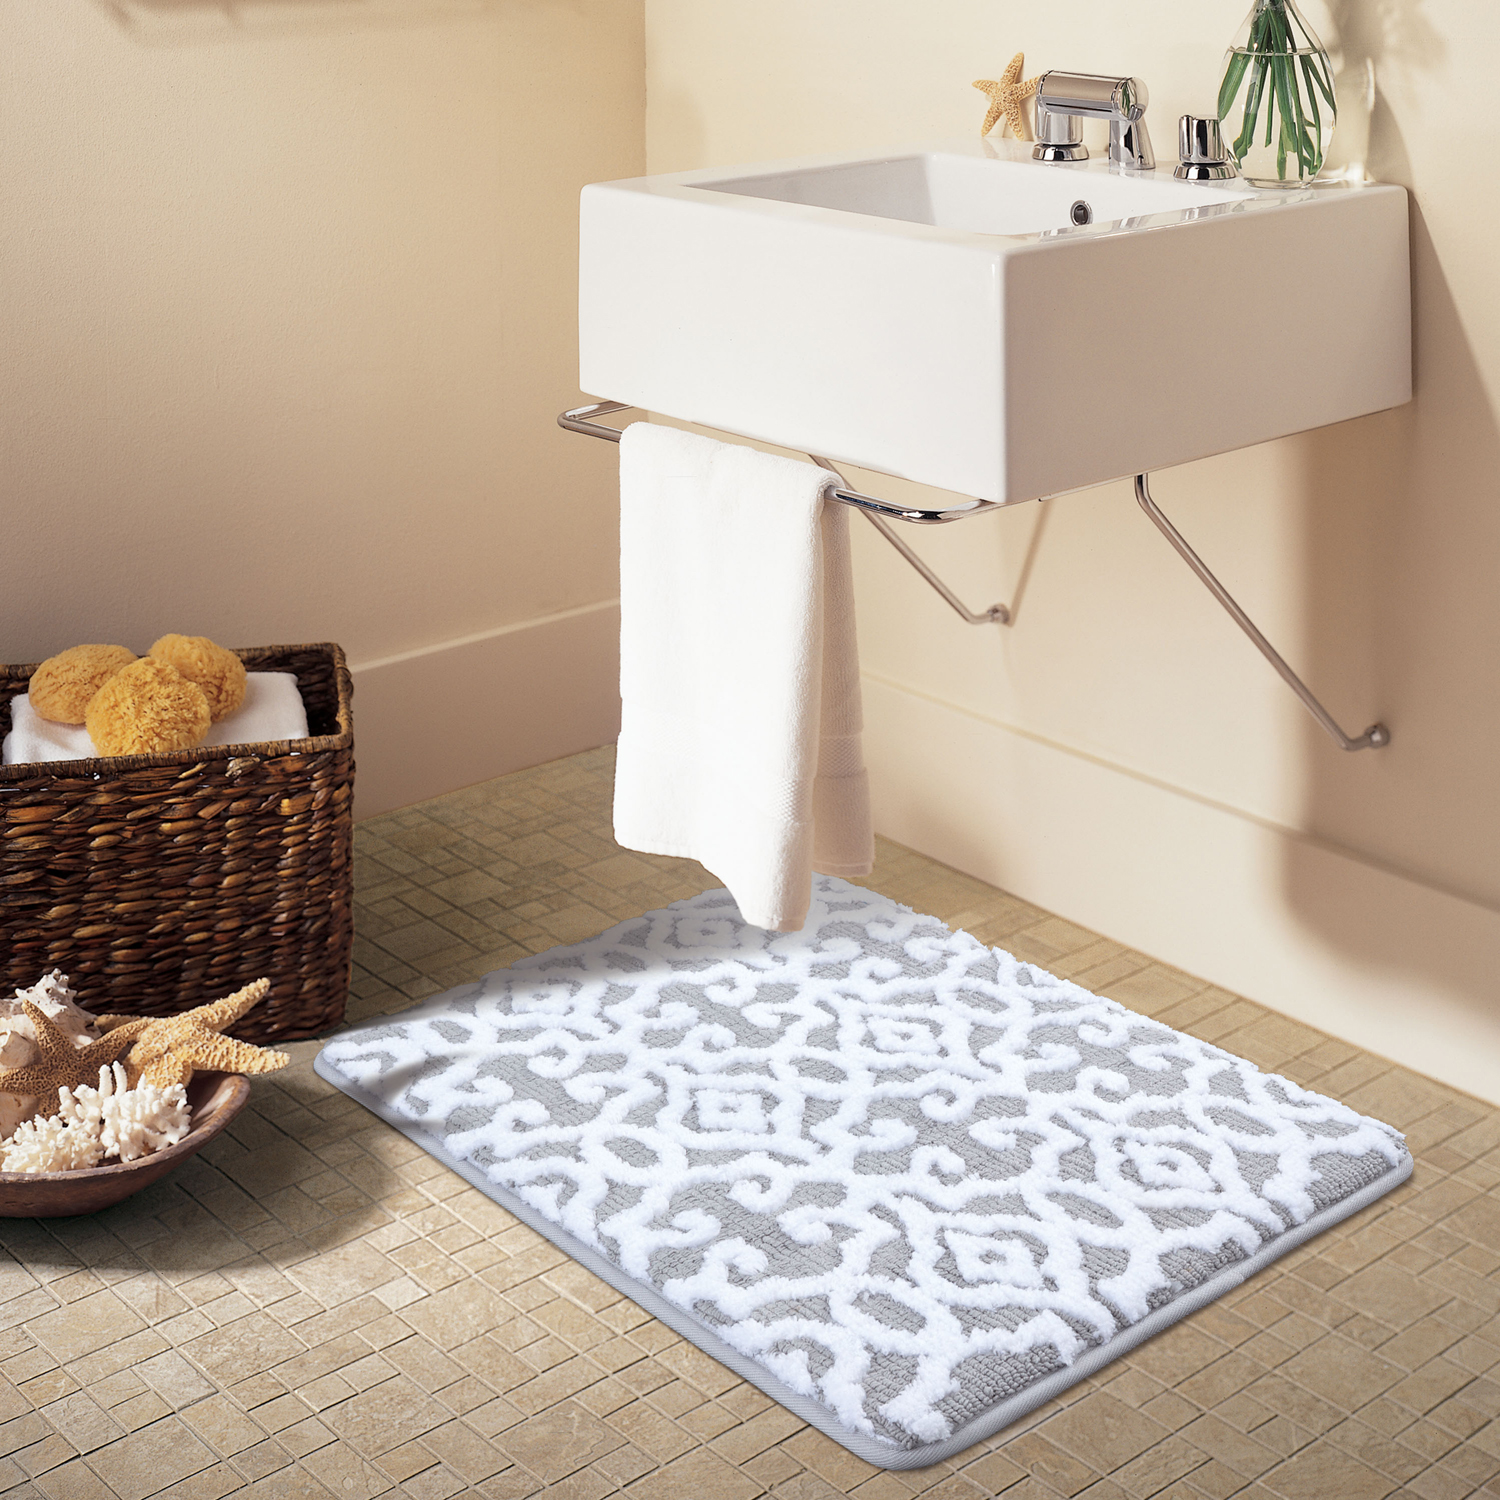 Better Homes & Gardens Jacquard Memory Foam Bath Rug by ABS